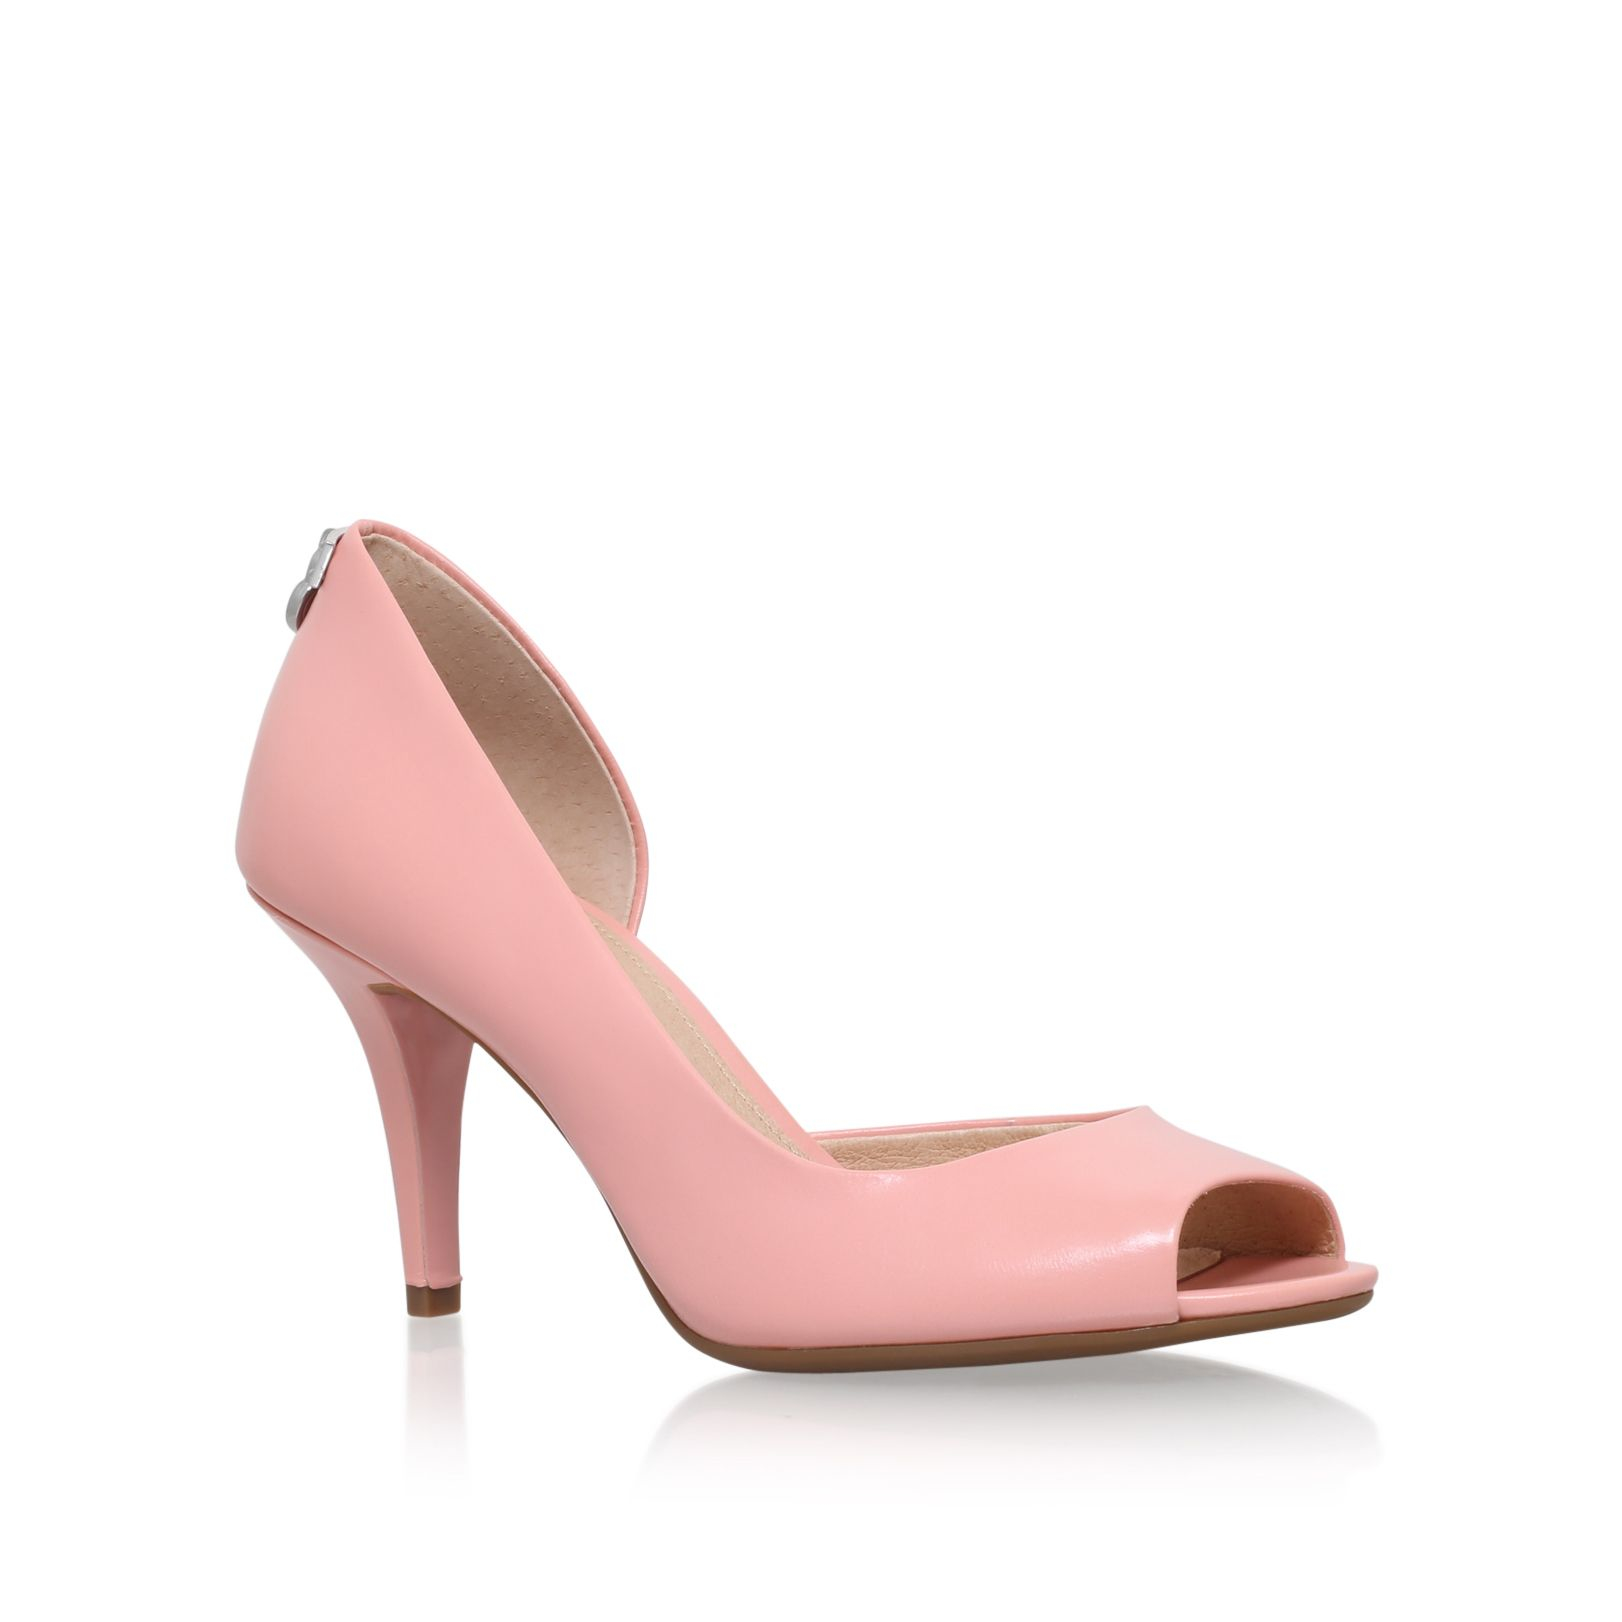 michael kors hamilton open toe court shoes in pink lyst